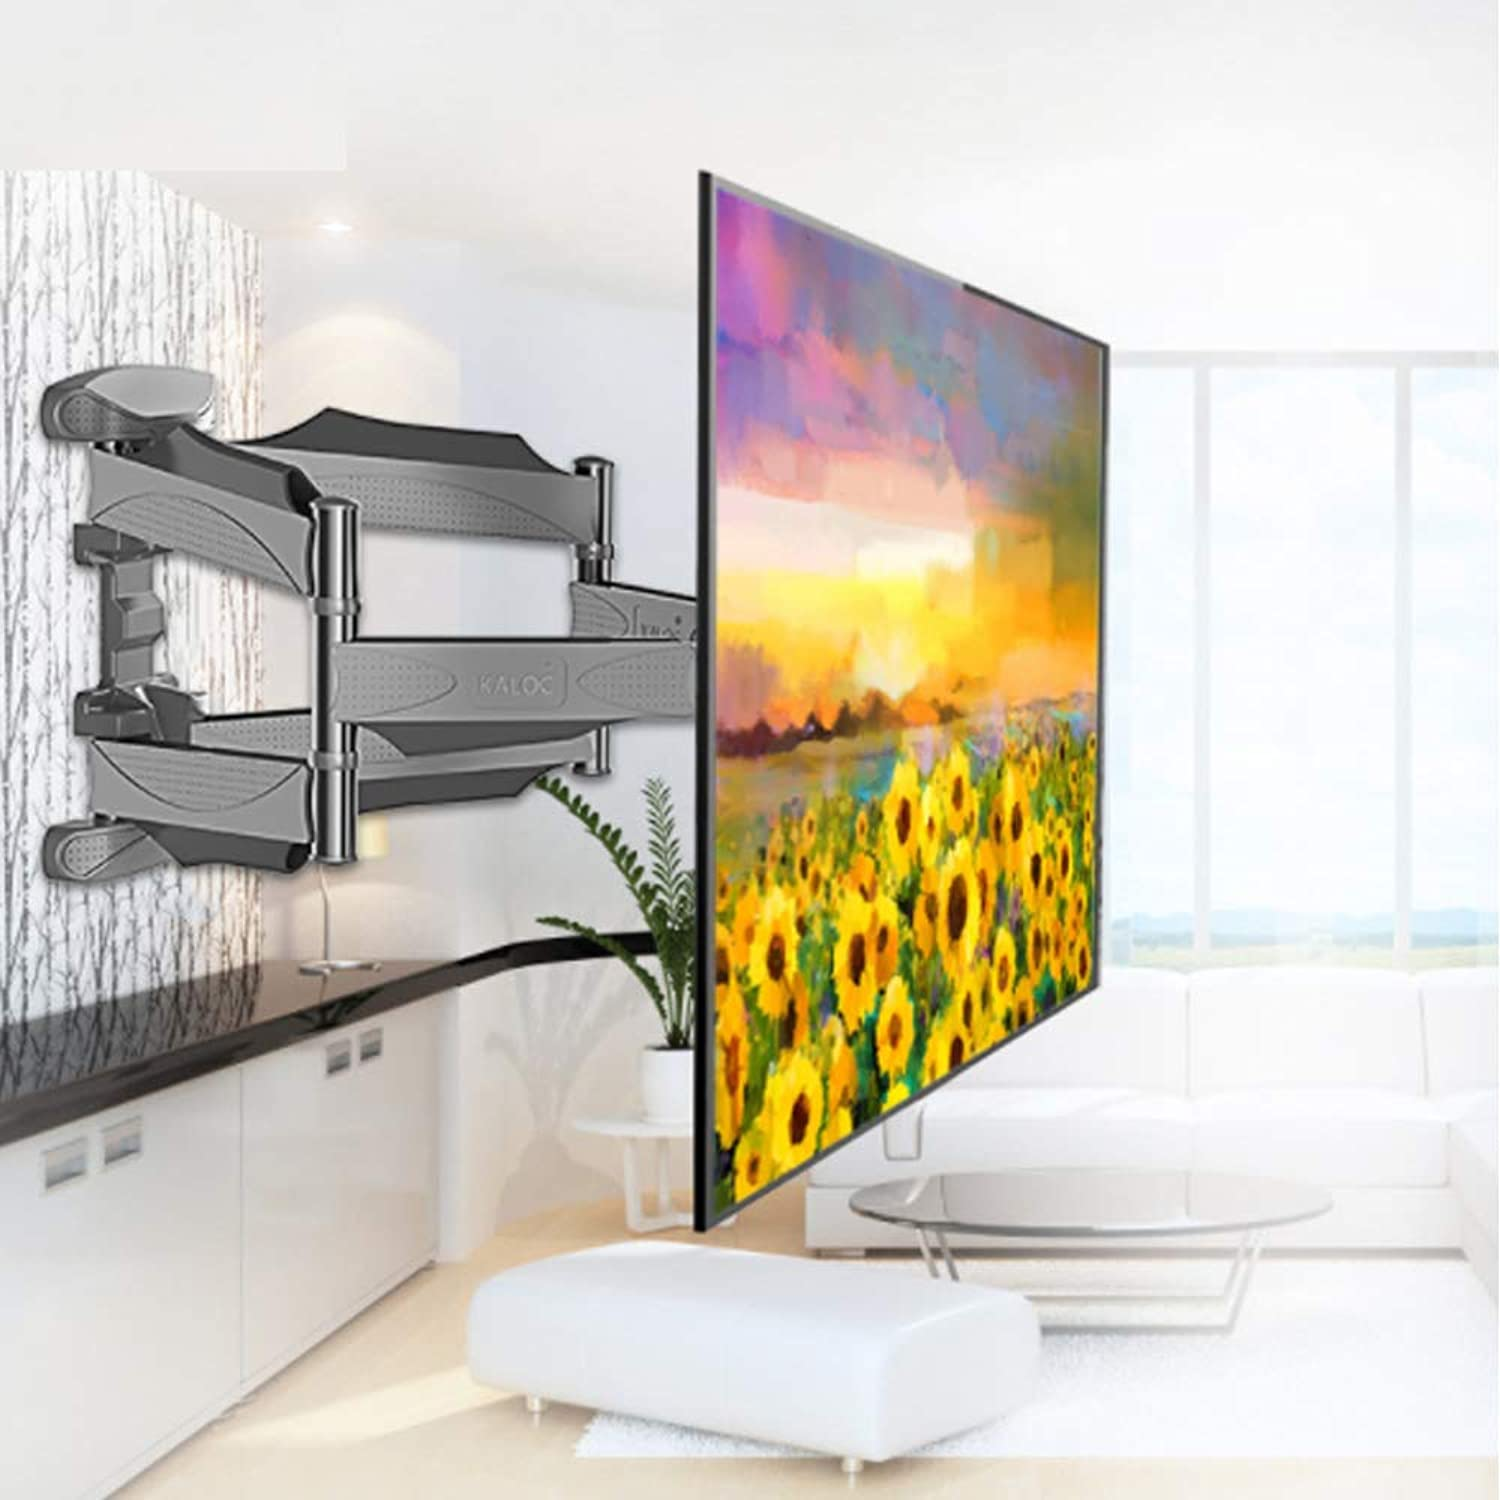 redatable TV Wall Mount Bracket Six-arm Stabilized Structure Telescopic TV Rack TV Multi-Functional Support Suitable for 99.9% TV Screen Sizes Between 32  to 55  with VESA Standard